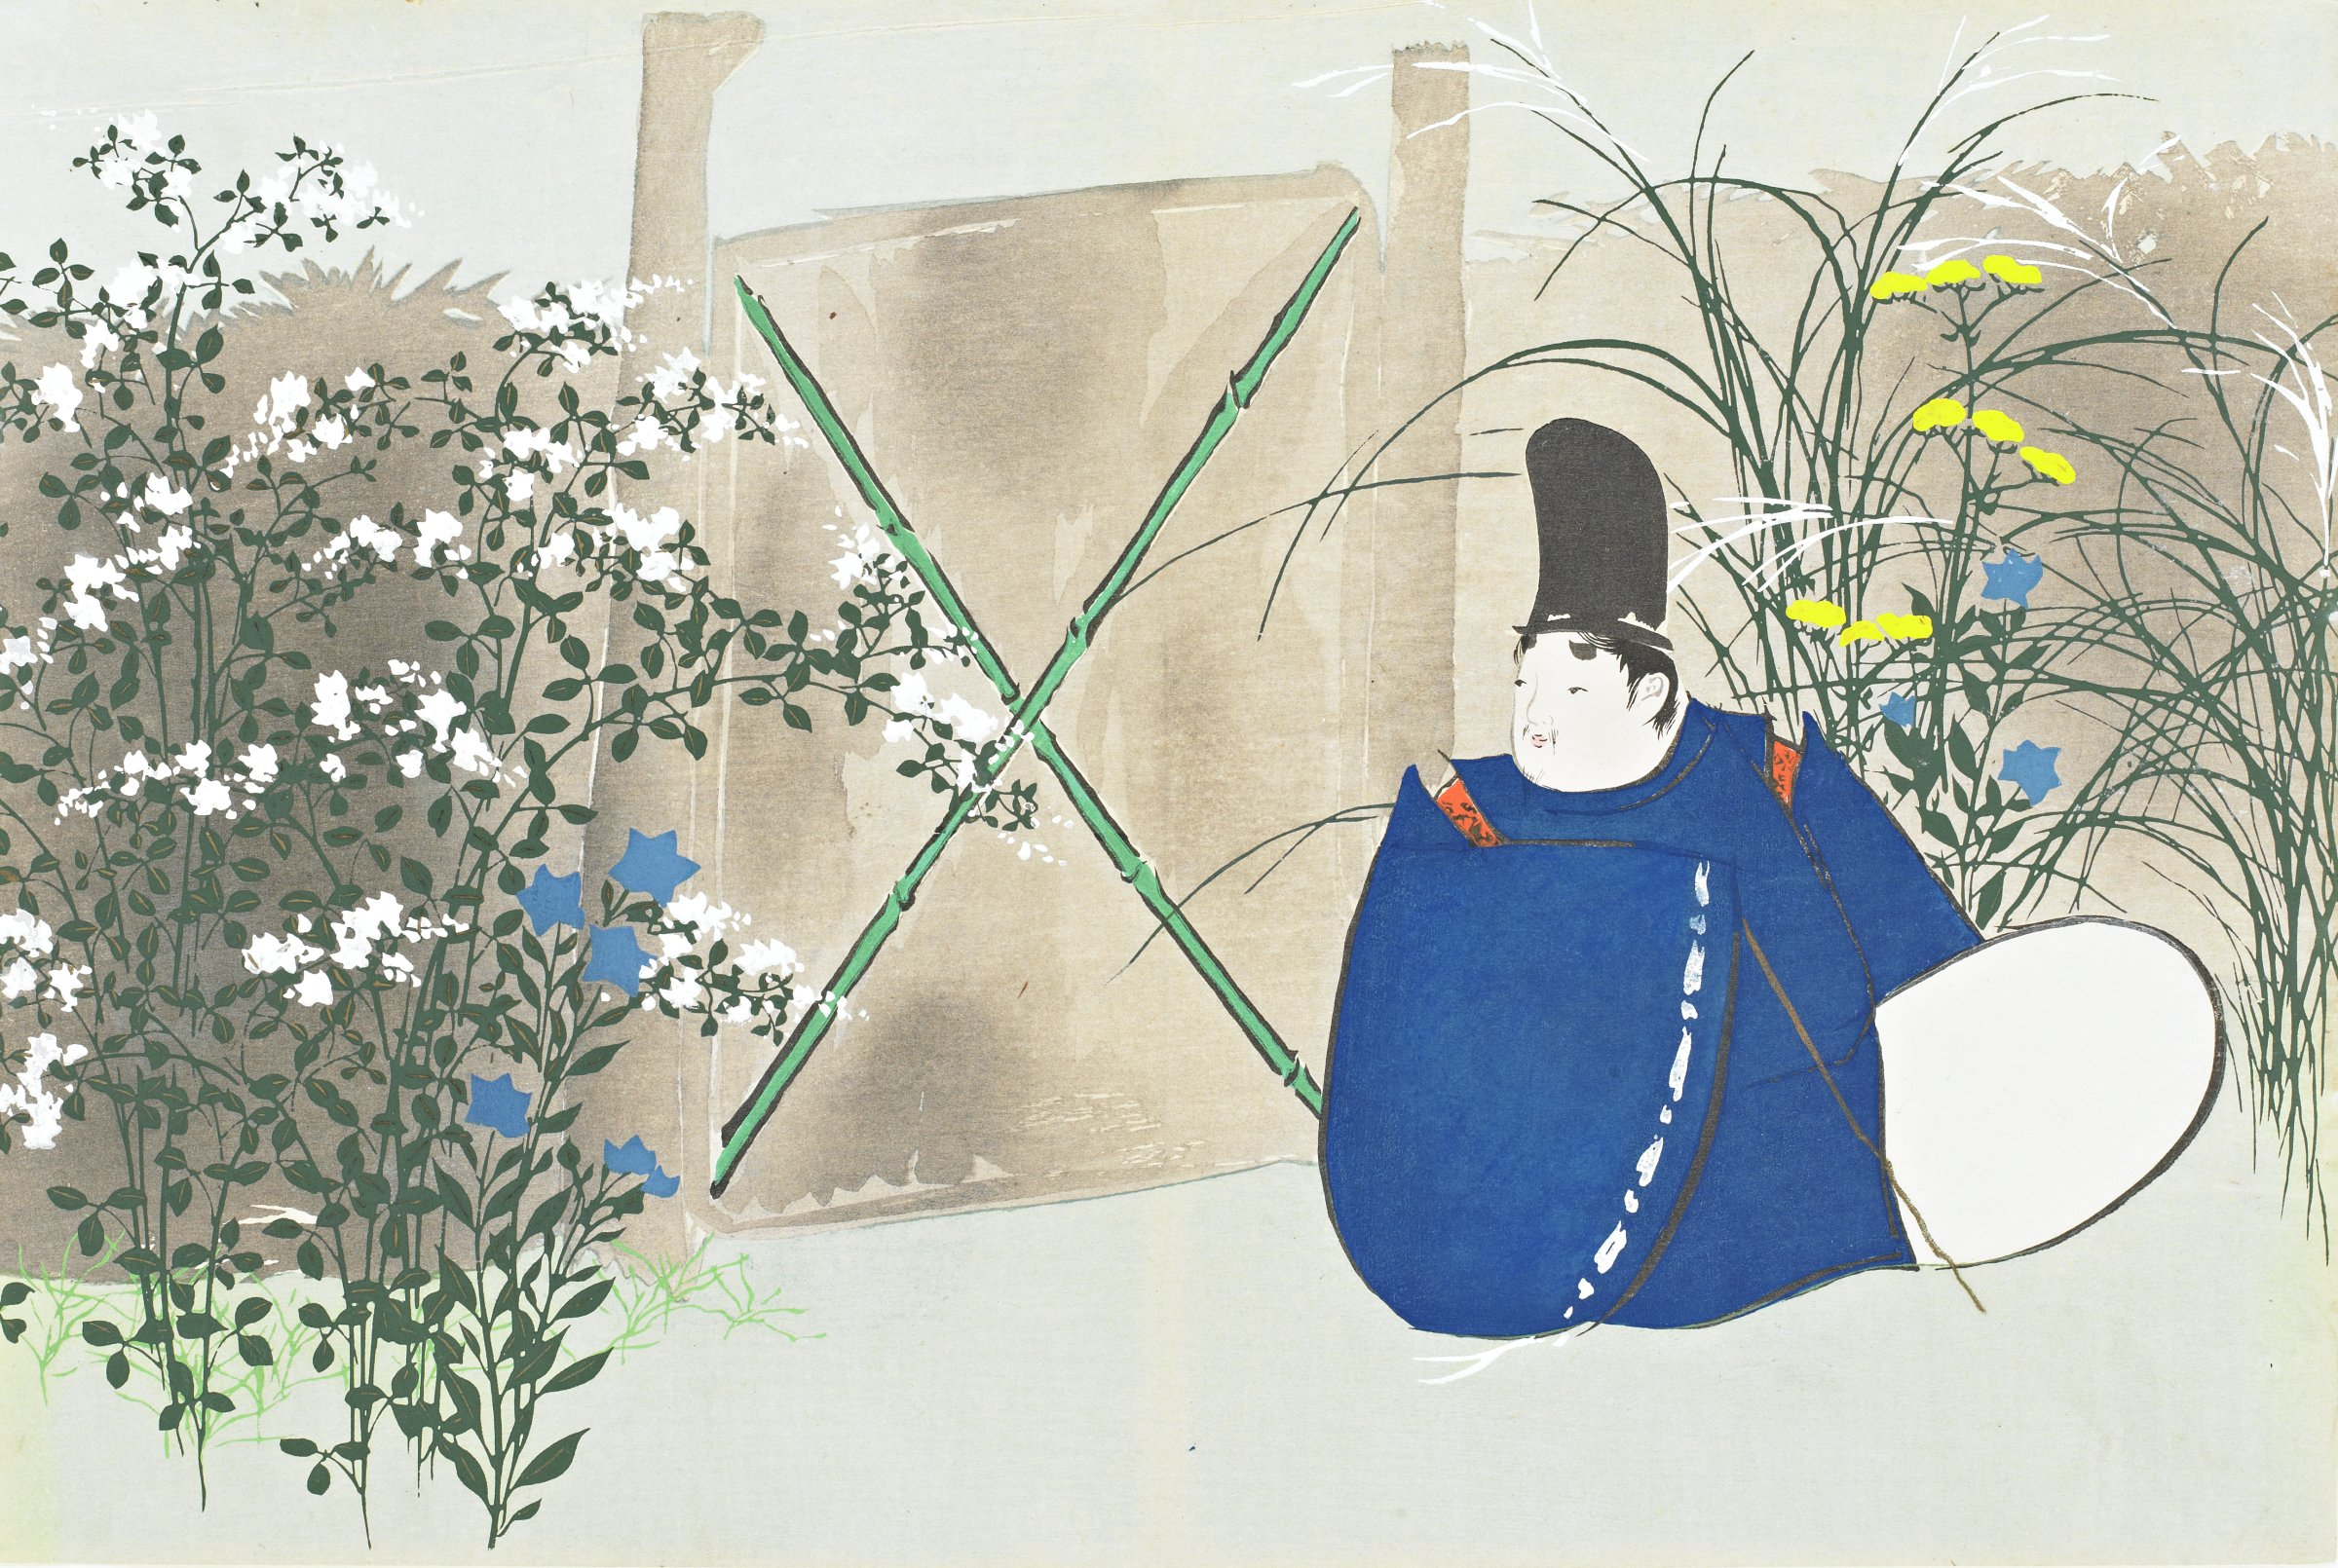 Nakaguni (Samurai from the Tales of Heike), from Momoyogusa (A World of Things), Volume 3, Kamisaka Sekka, ink and color on paper